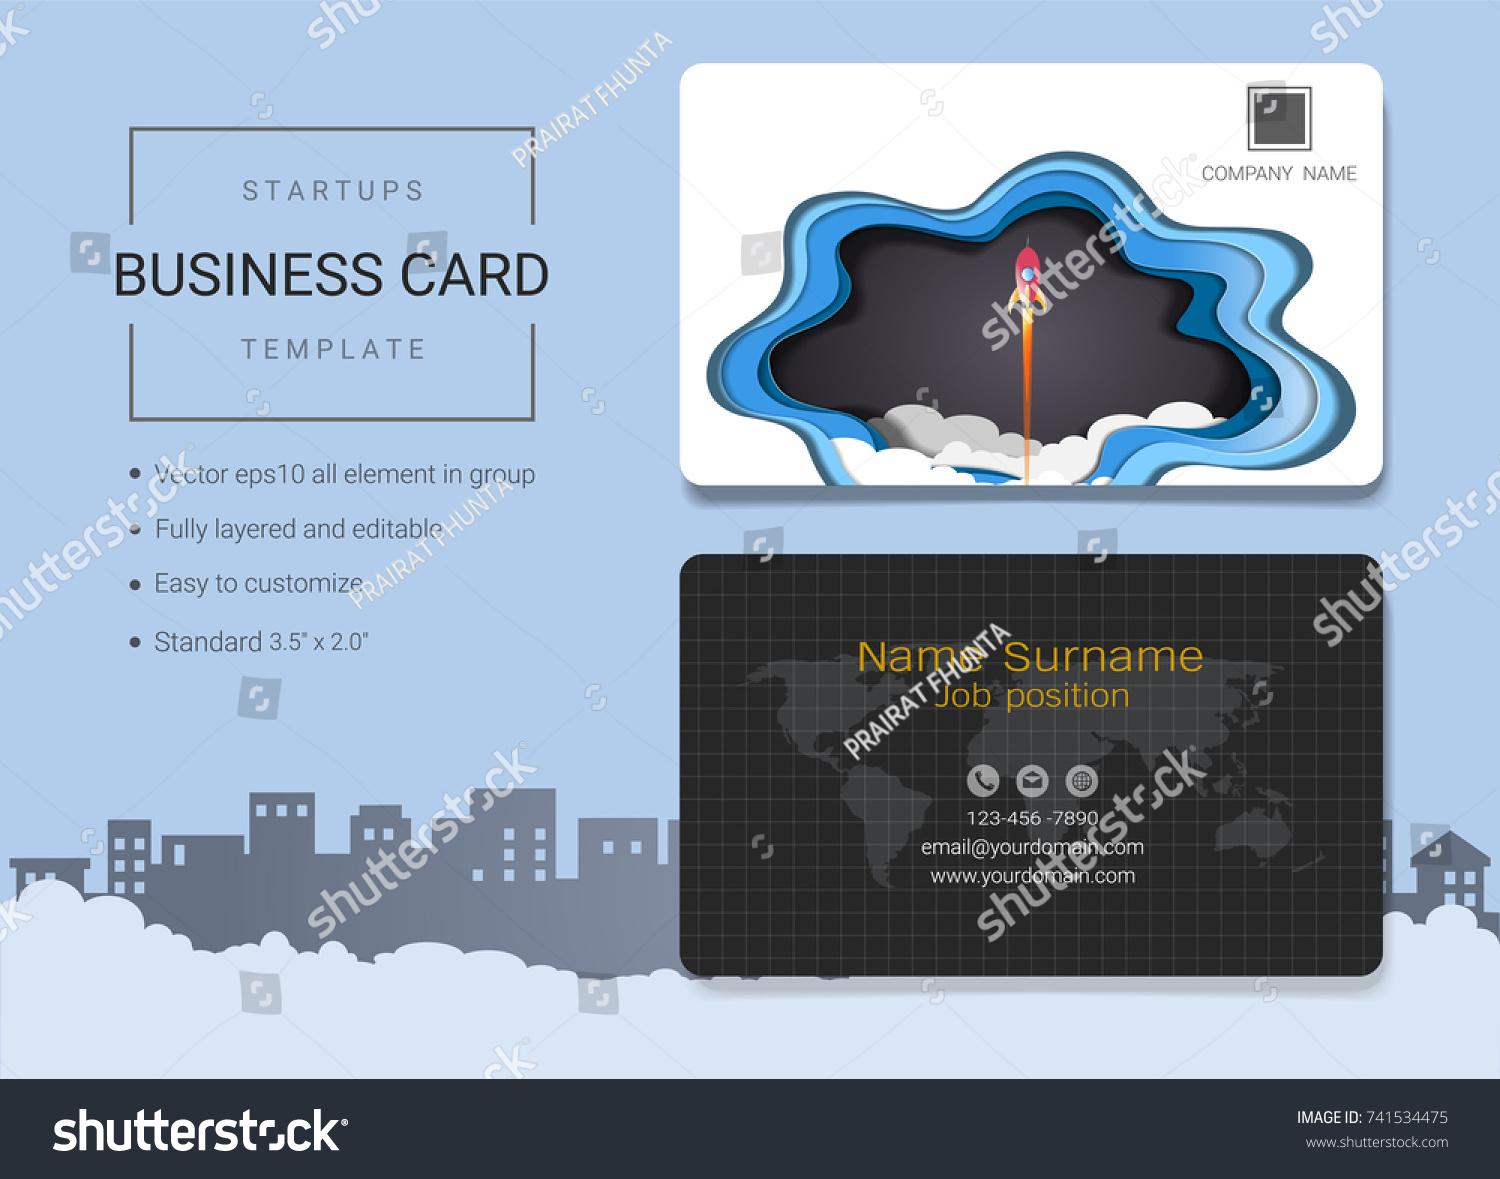 Startup Business Card Name Card Template Stock Vector 741534475 ...